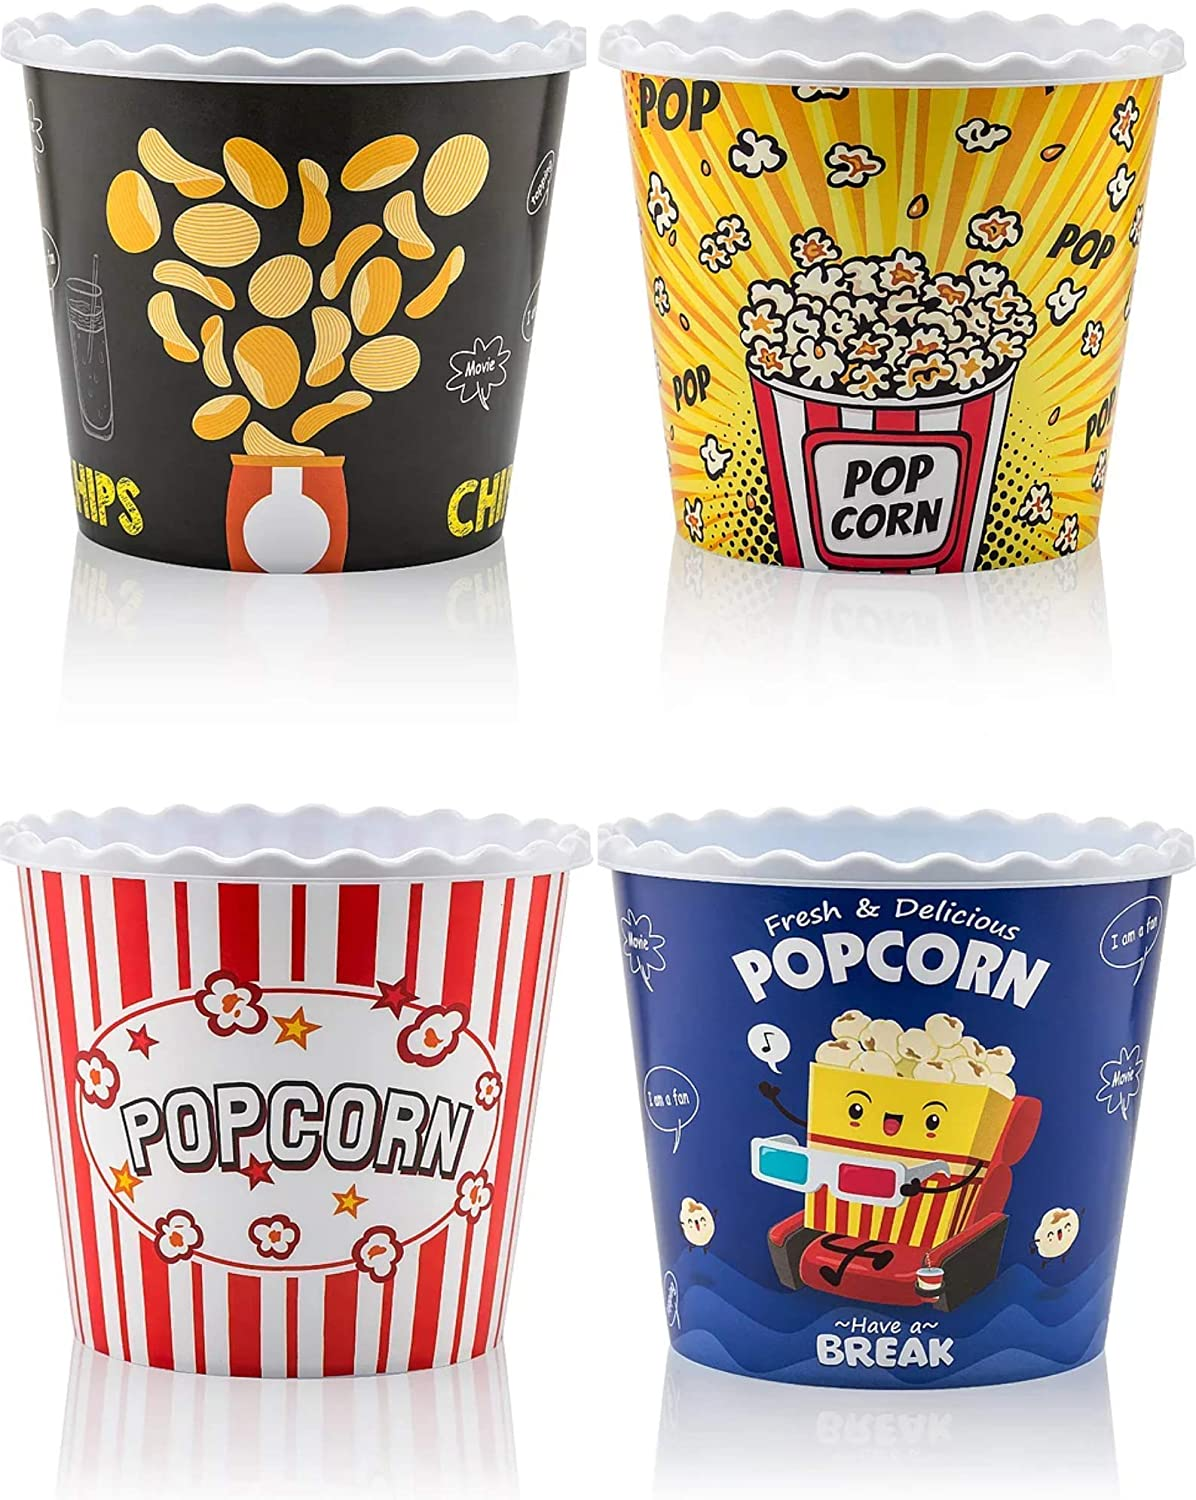 Modern Style Reusable Plastic Popcorn Containers